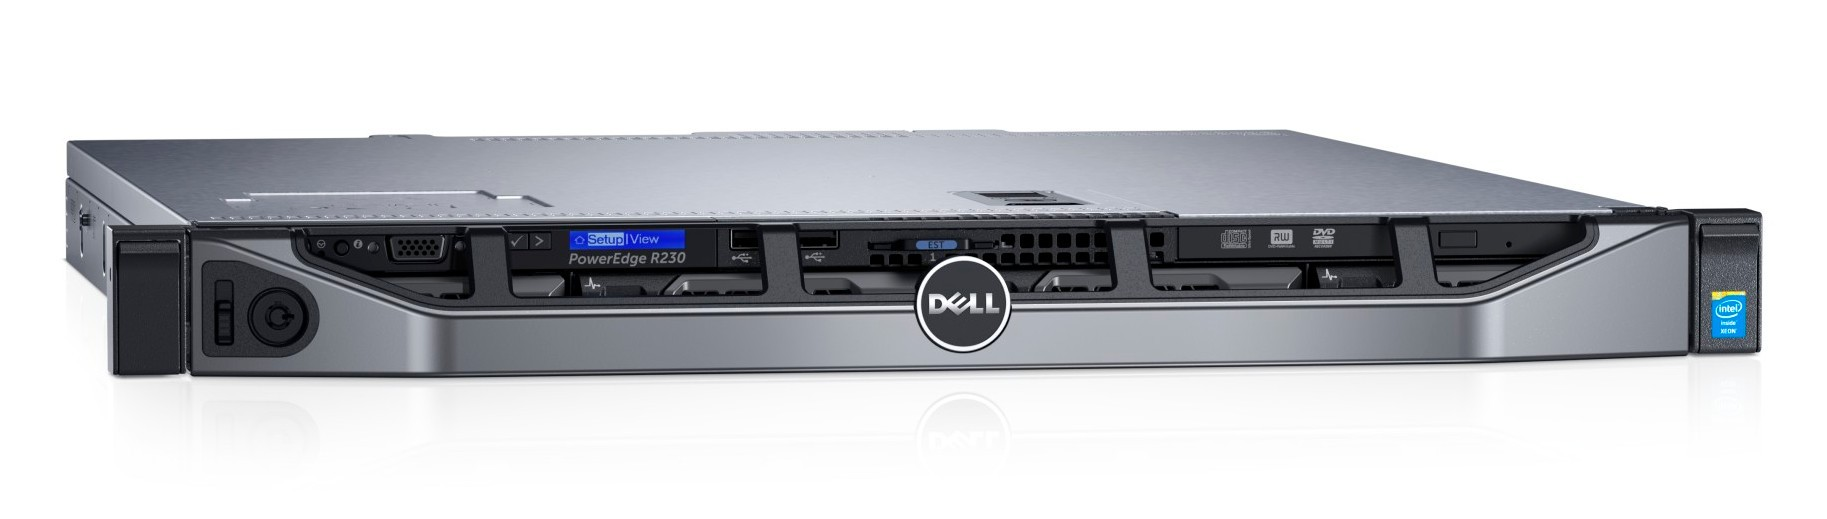 Máy chủ Dell PowerEdge R230 E3-1230 v6